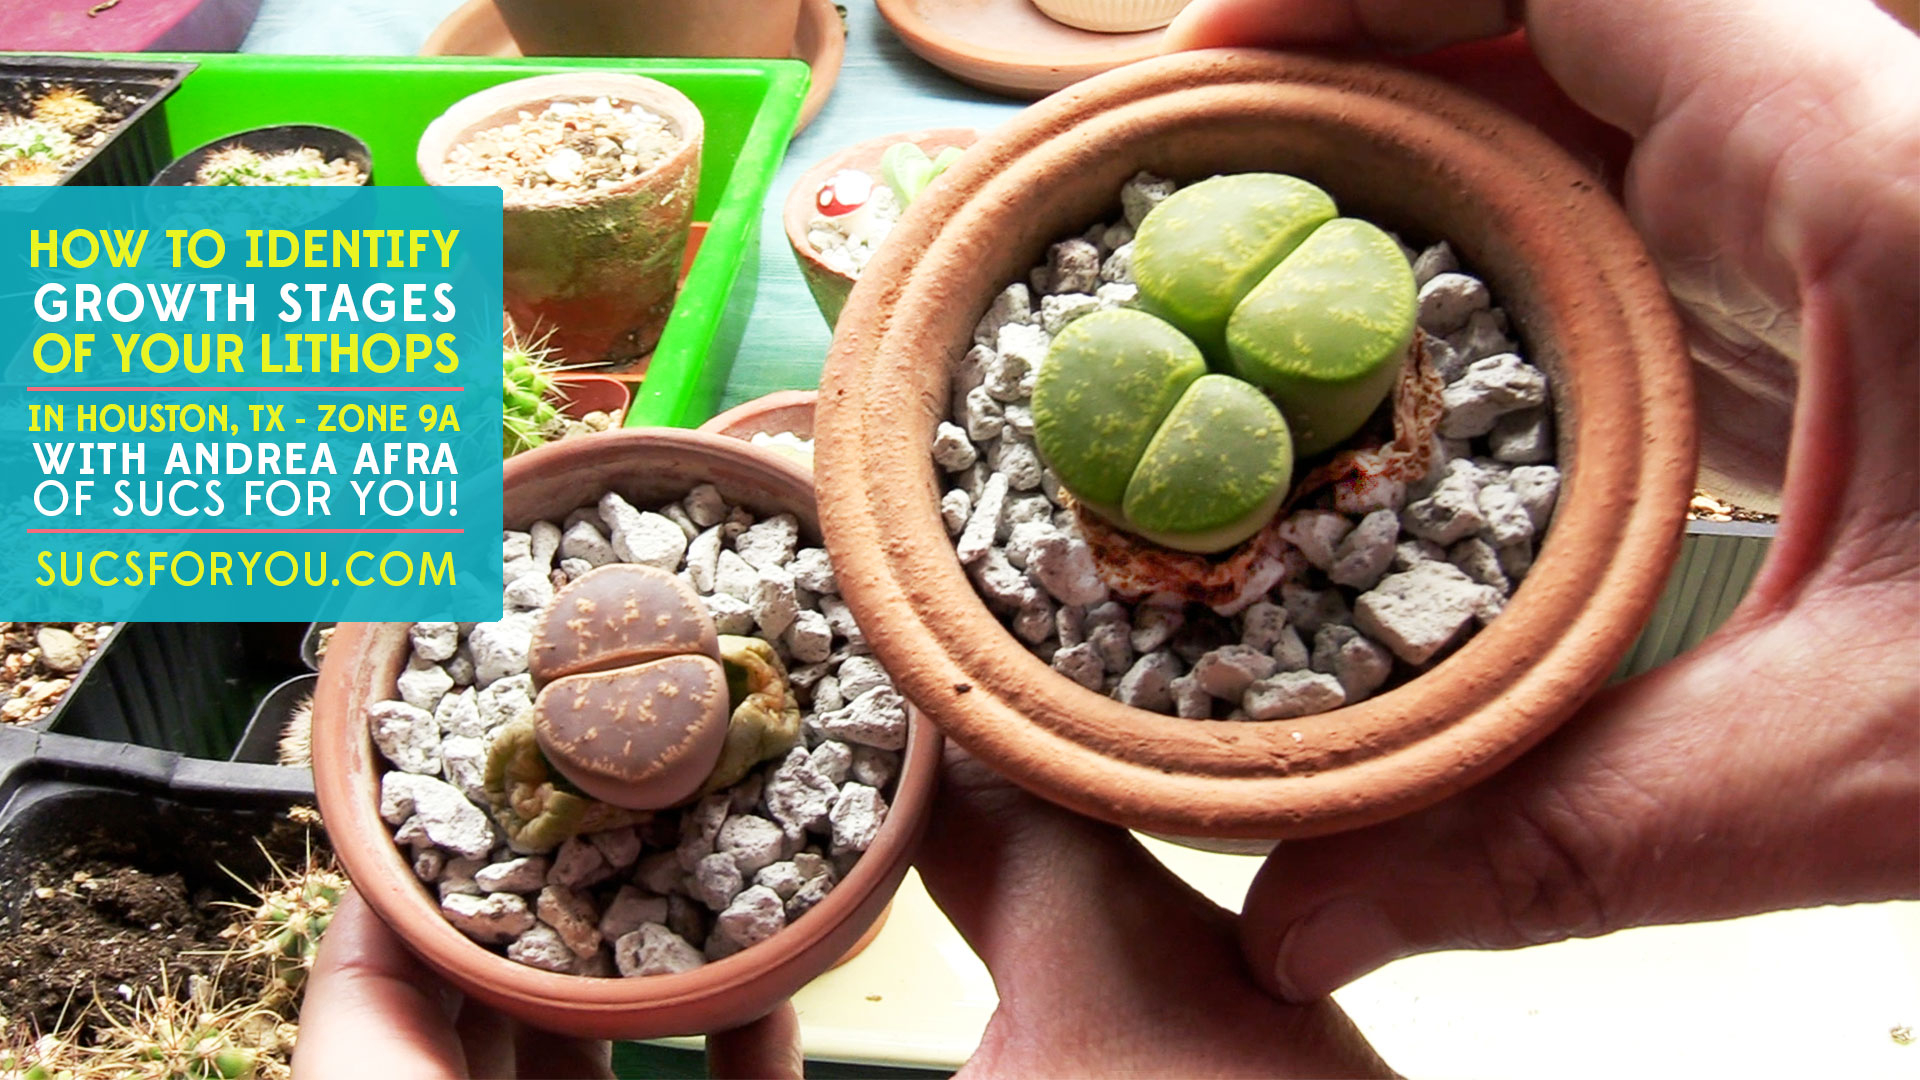 identify what stage of growth your Lithops is in